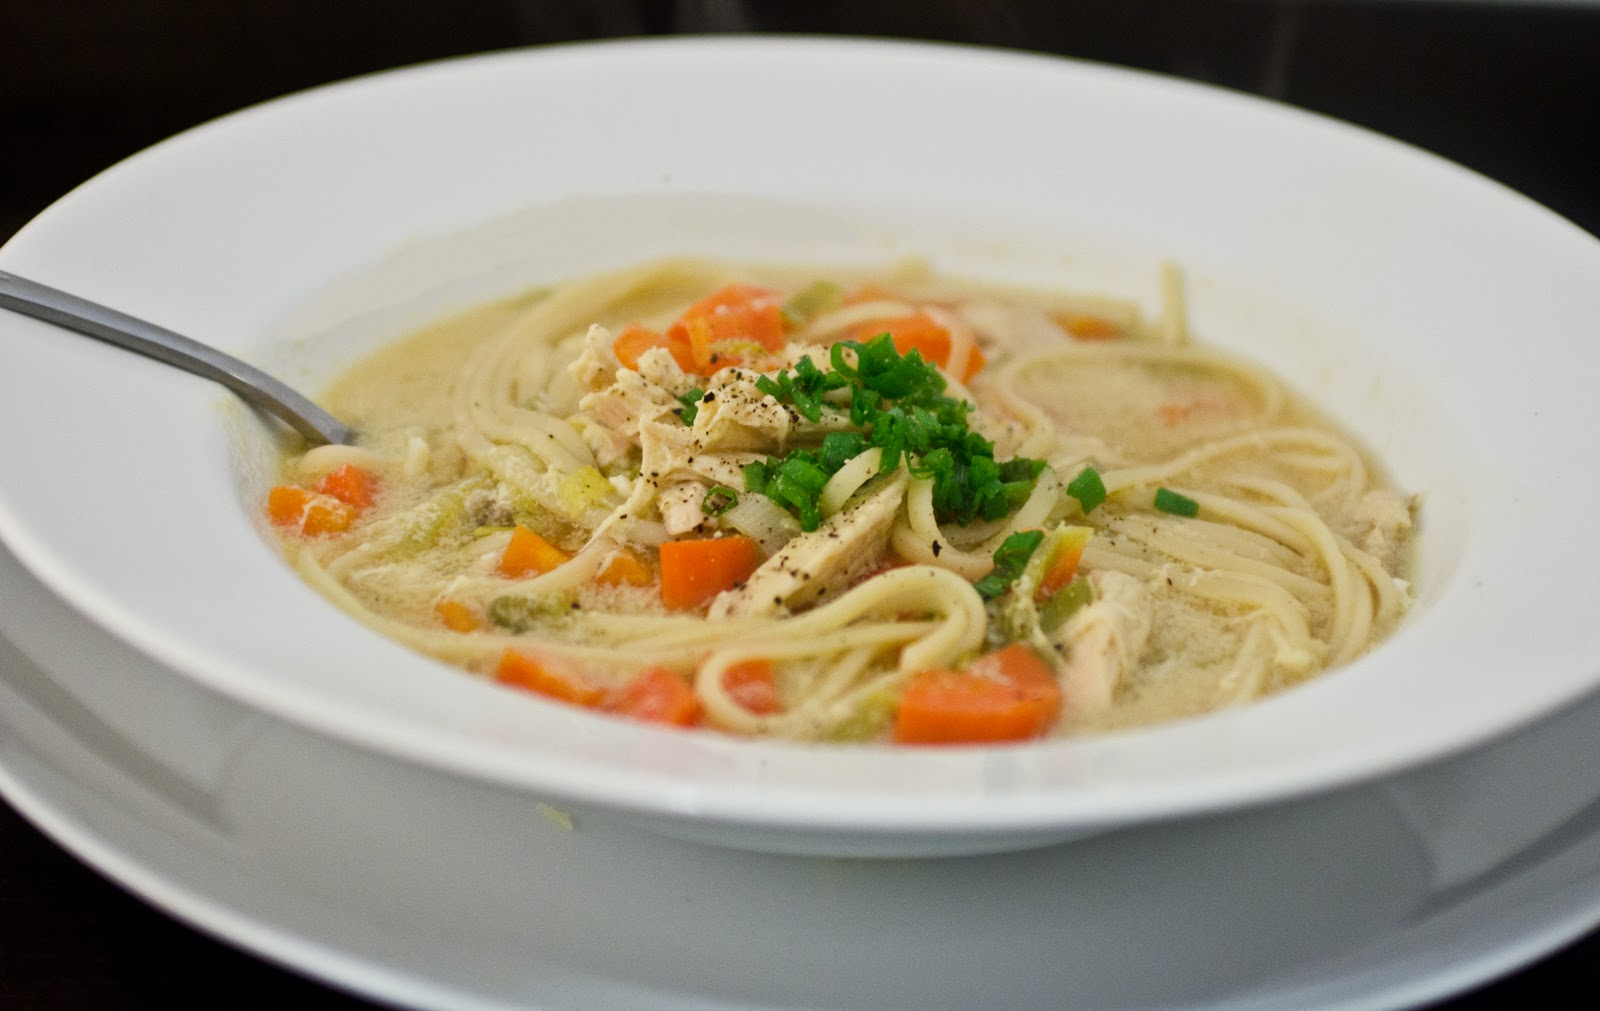 Navy Blue Kitchen: Chicken Noodle Soup with Egg